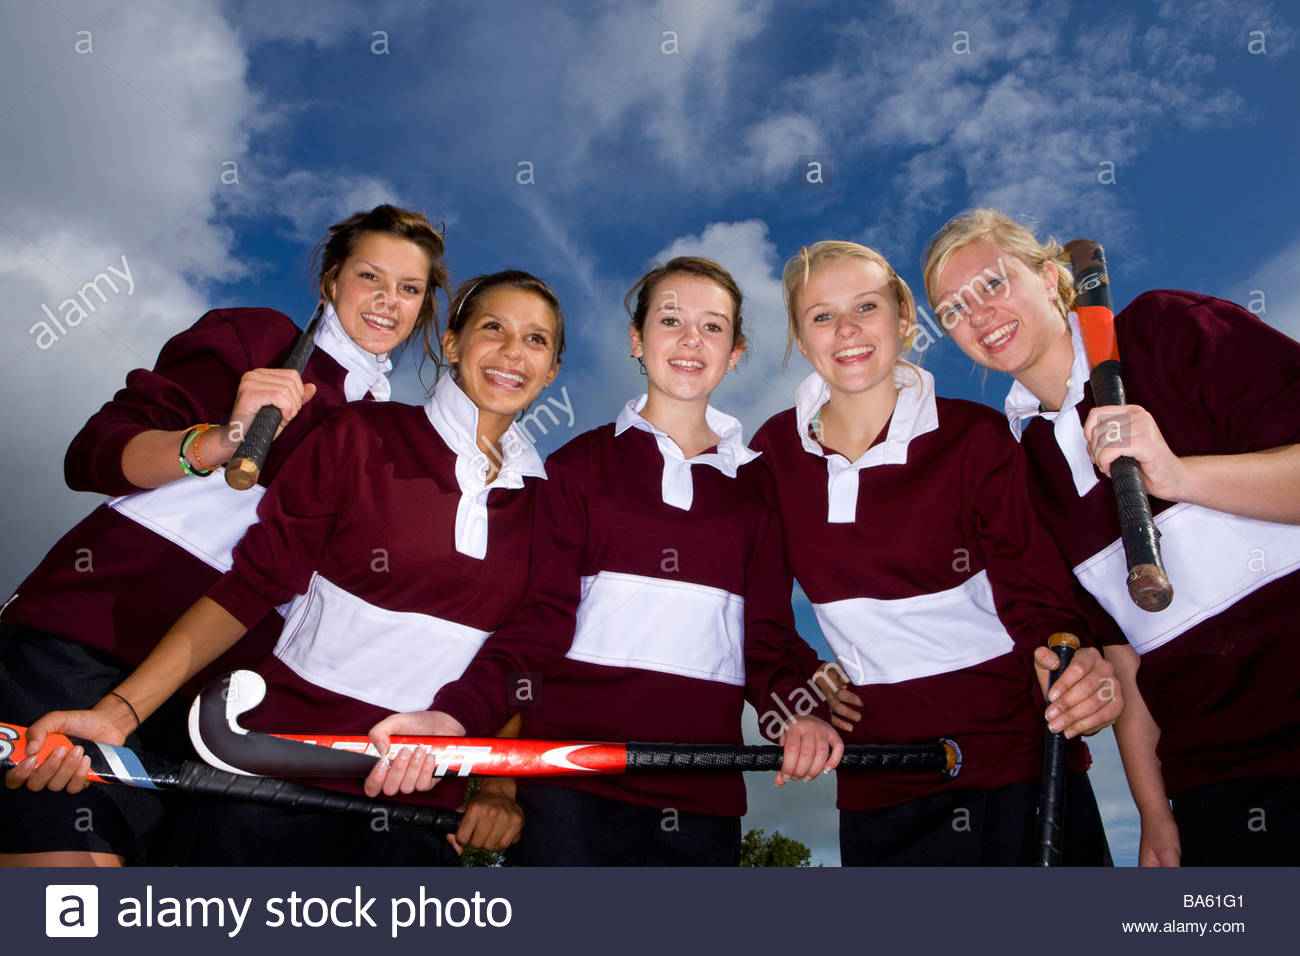 Portrait of smiling teenage girls holding field hockey stick Photo Stock